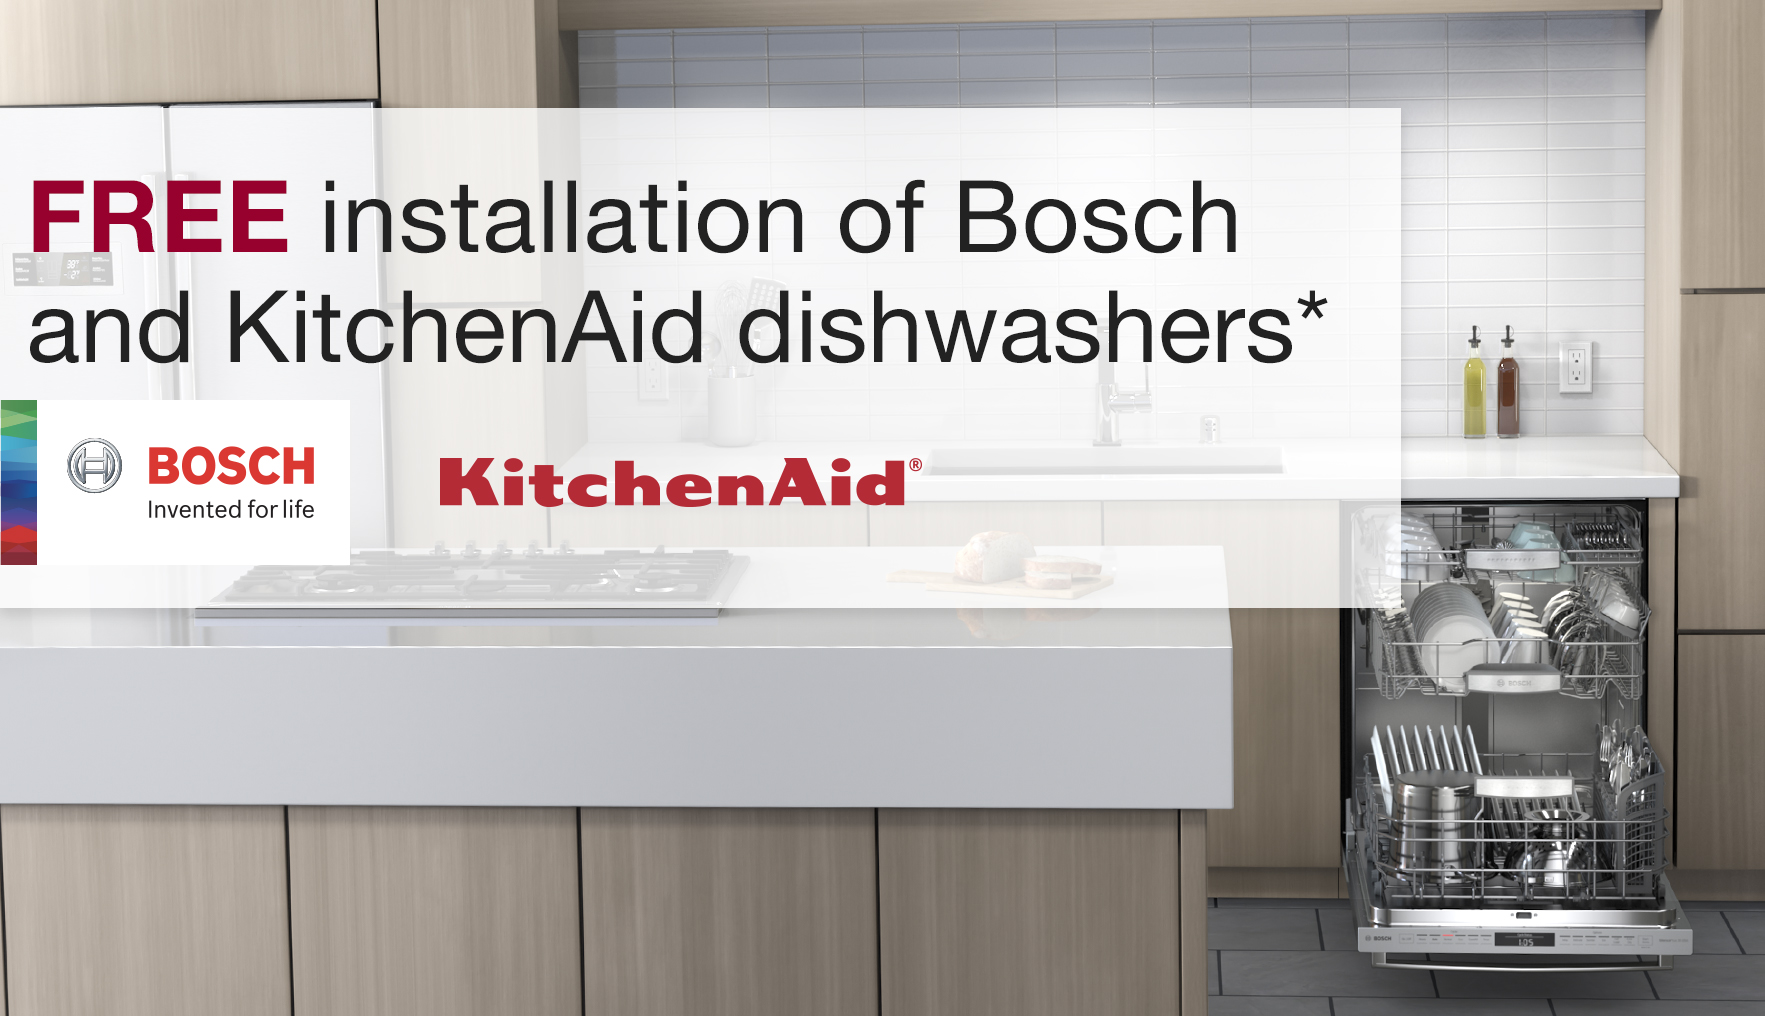 Free installation of Bosch and KitchenAid dishwashers*